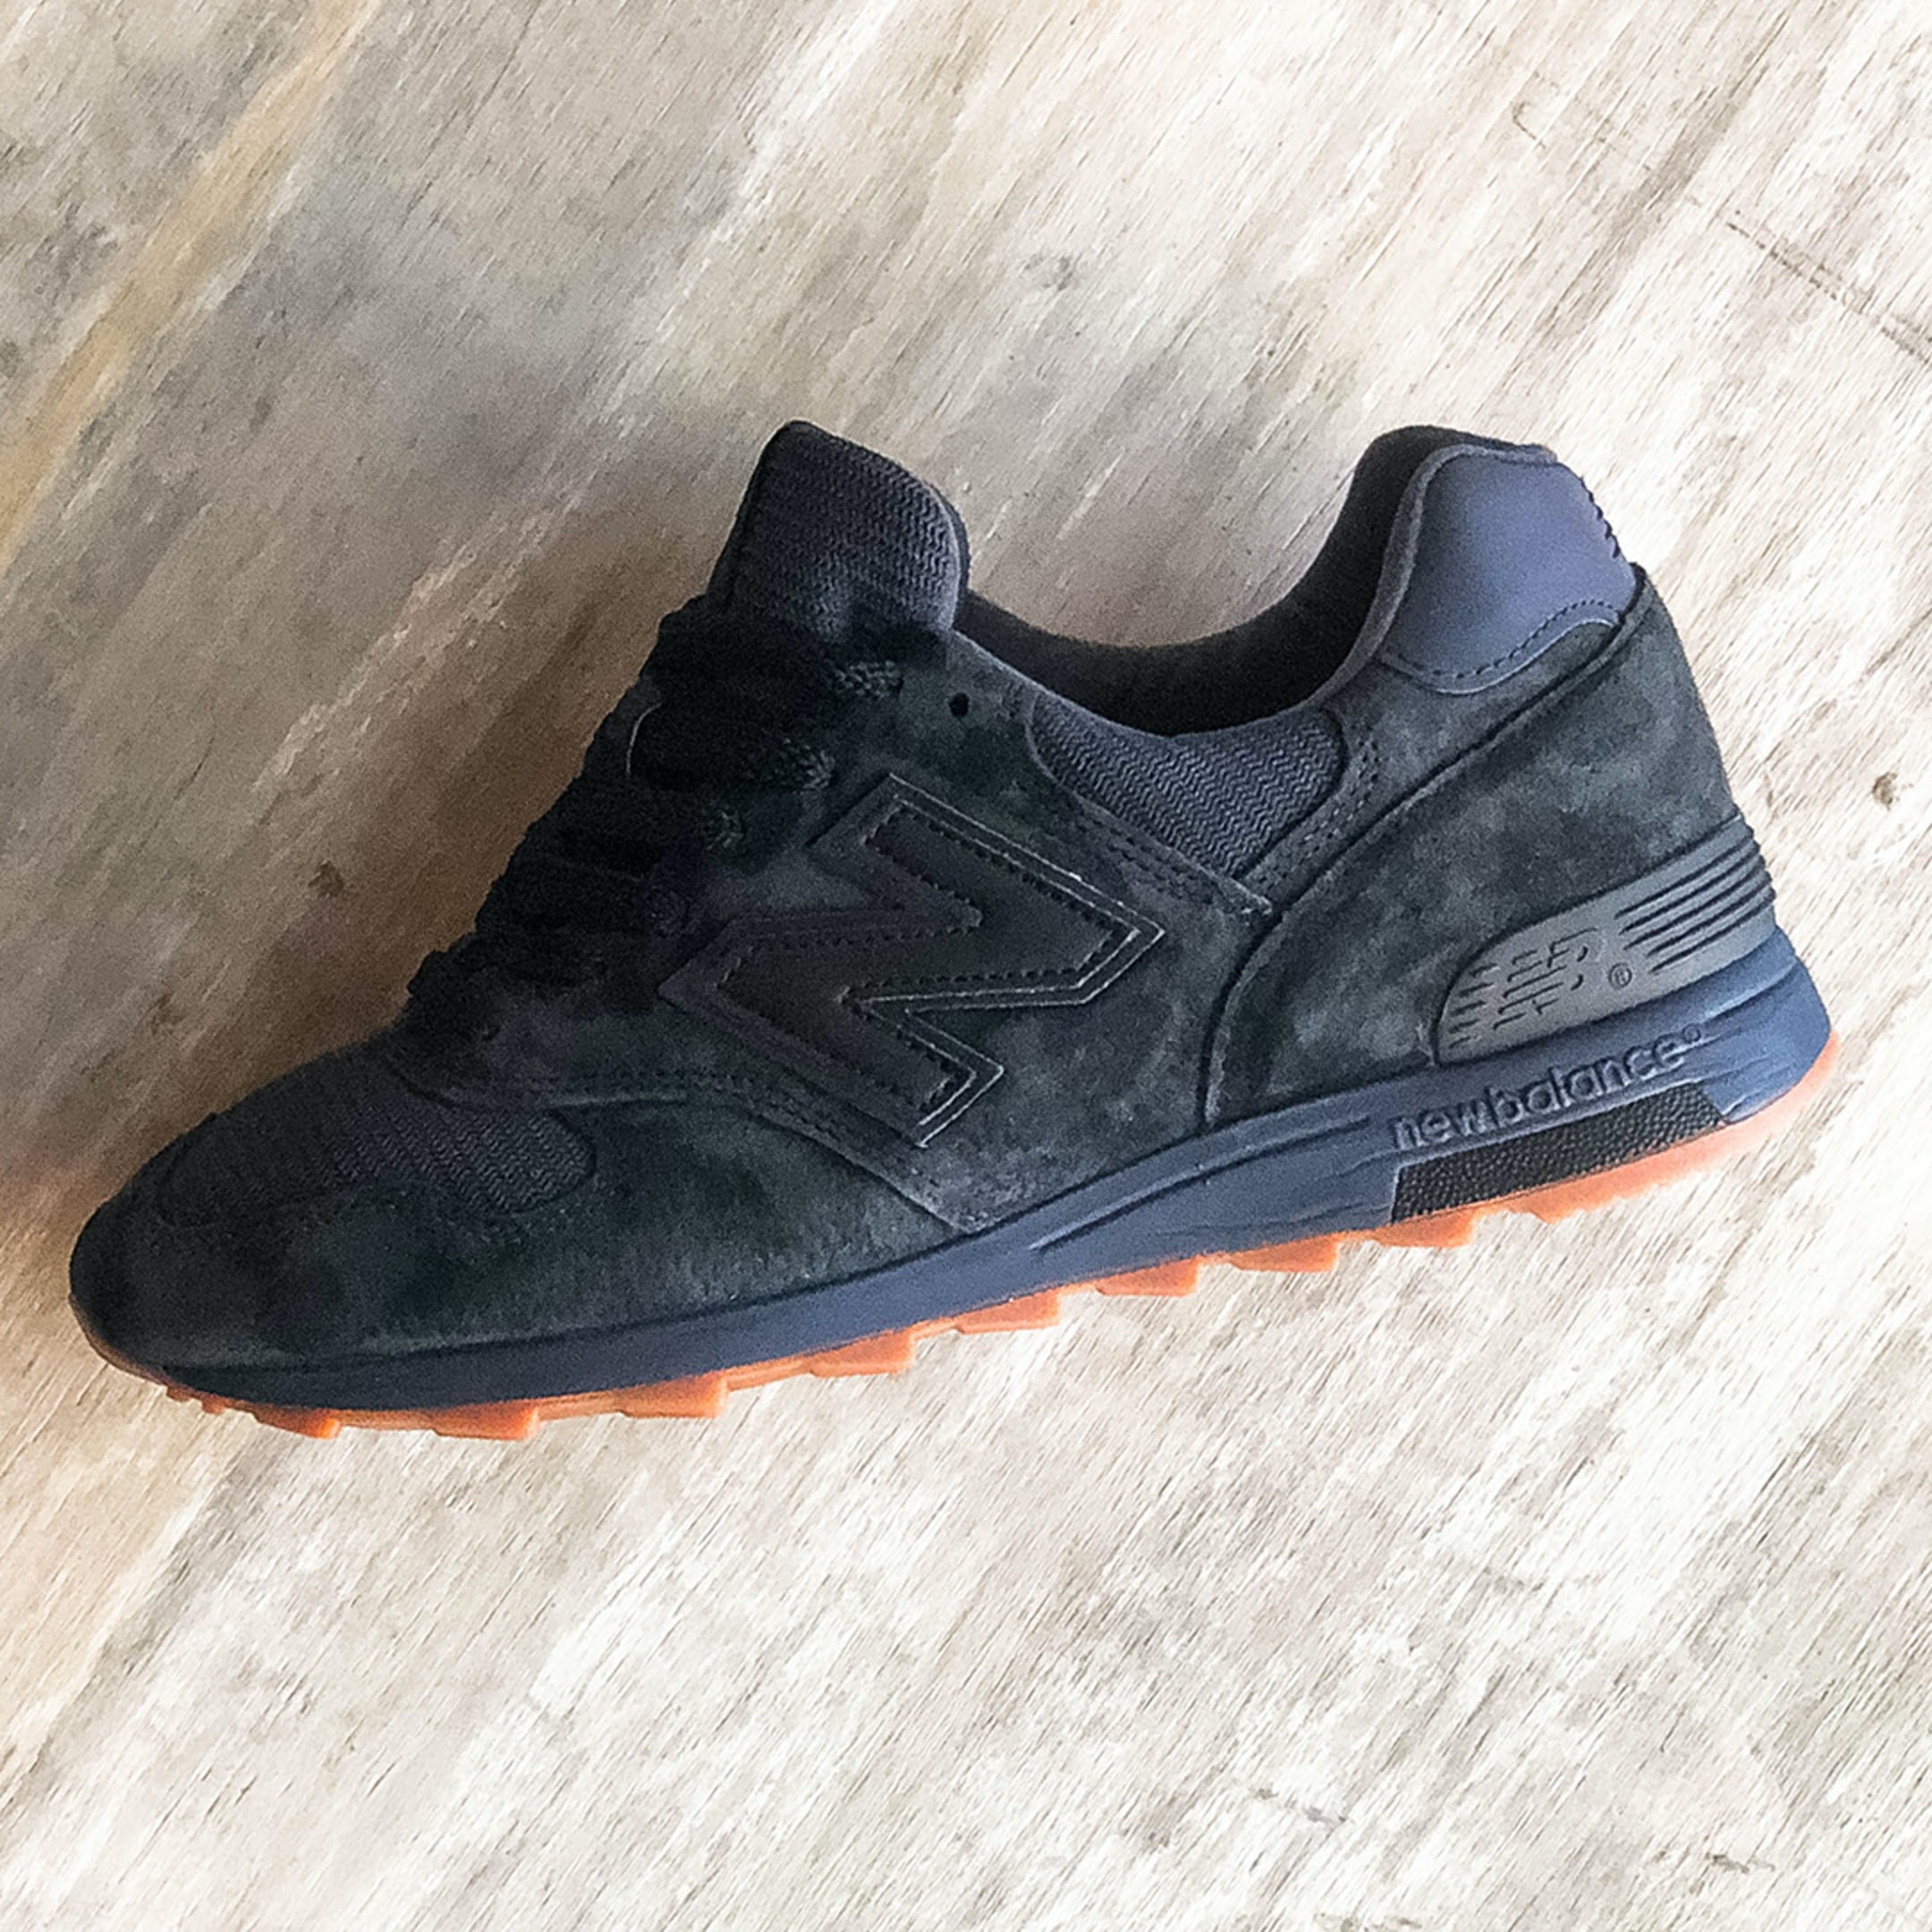 b0264fc035688 J.Crew x New Balance 1400 Sneakers First Look & Details // ONE37pm